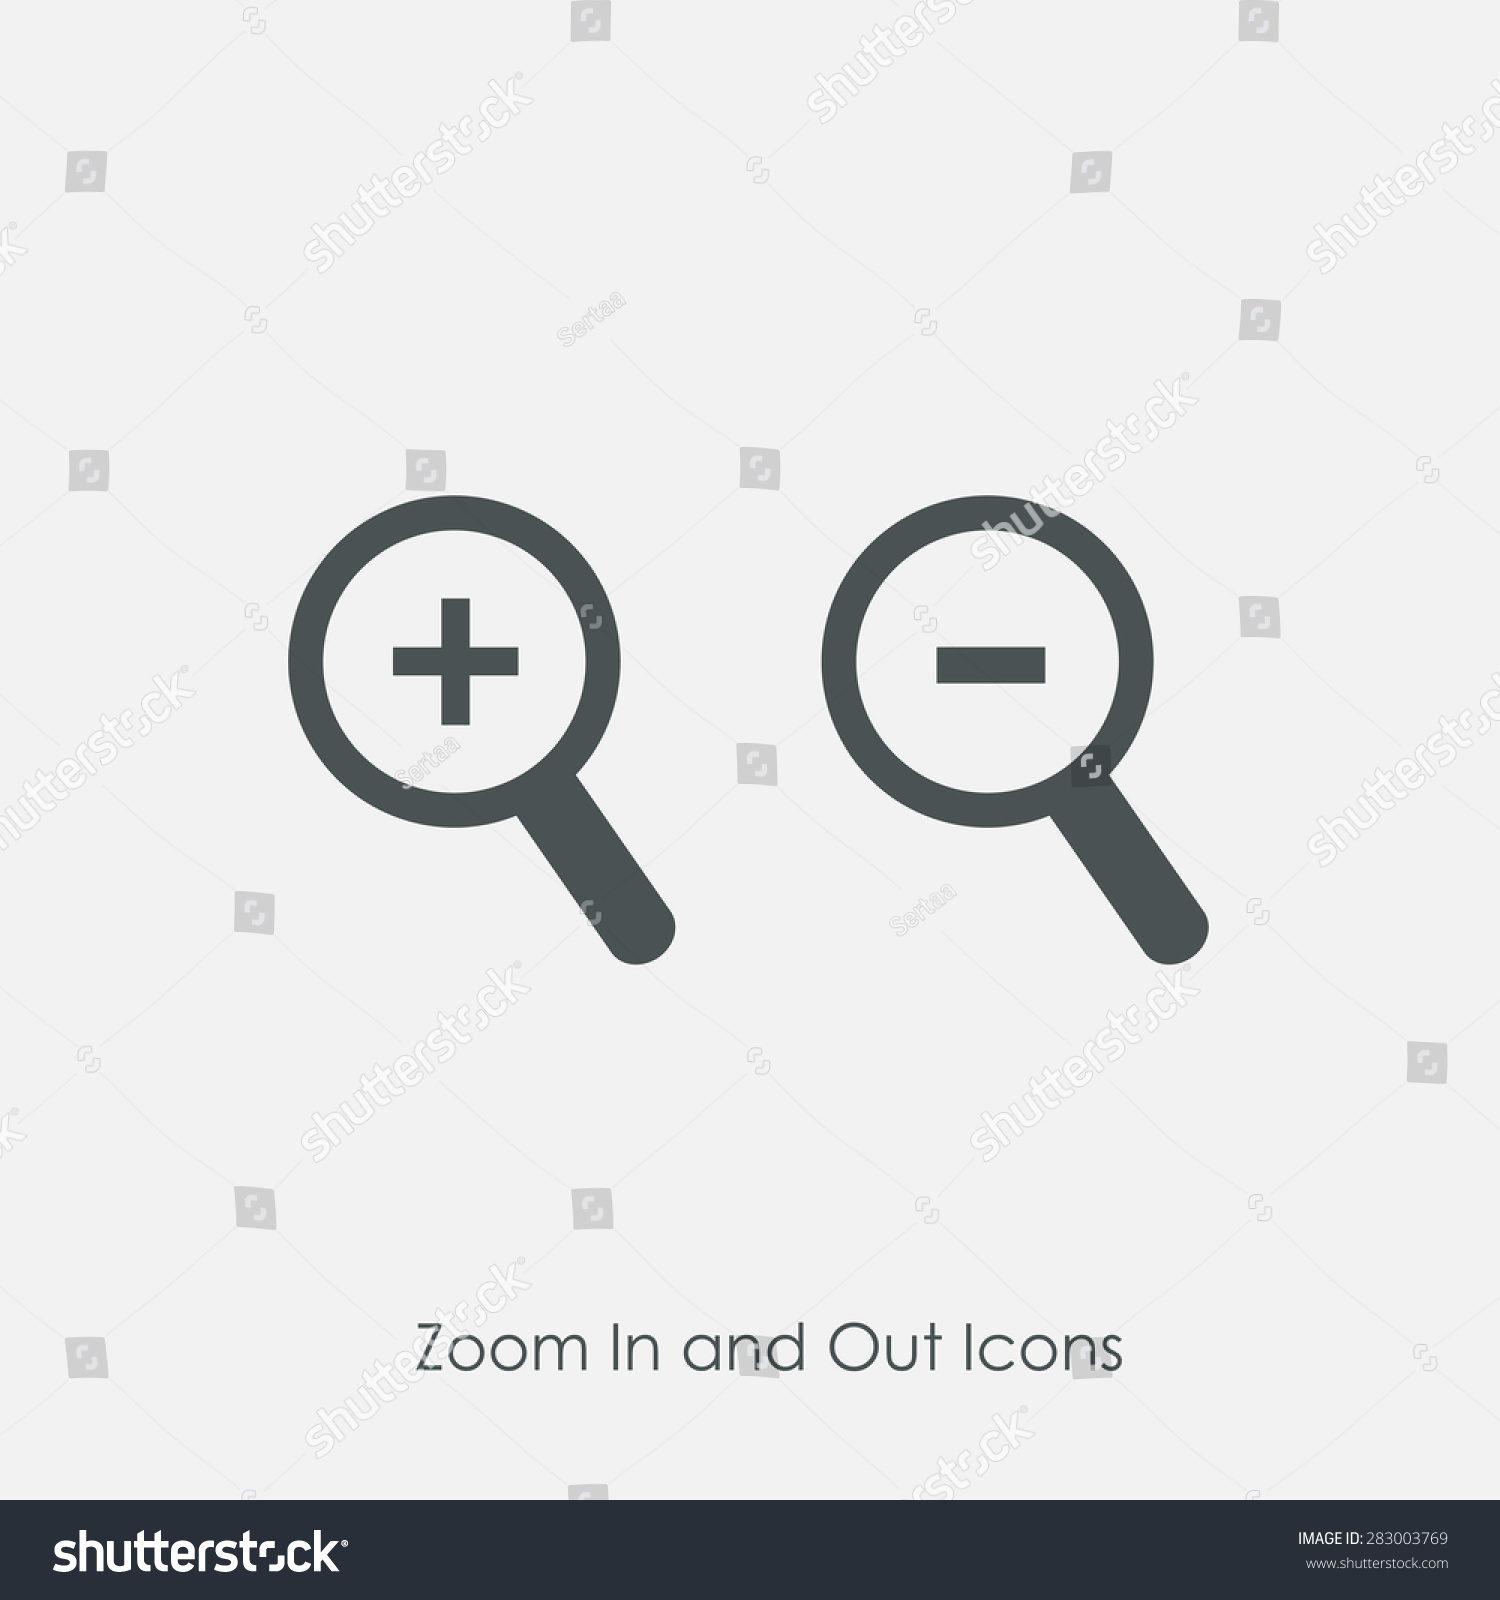 Zoom in and zoom out icons simple zoom in zoom out magnifier glass